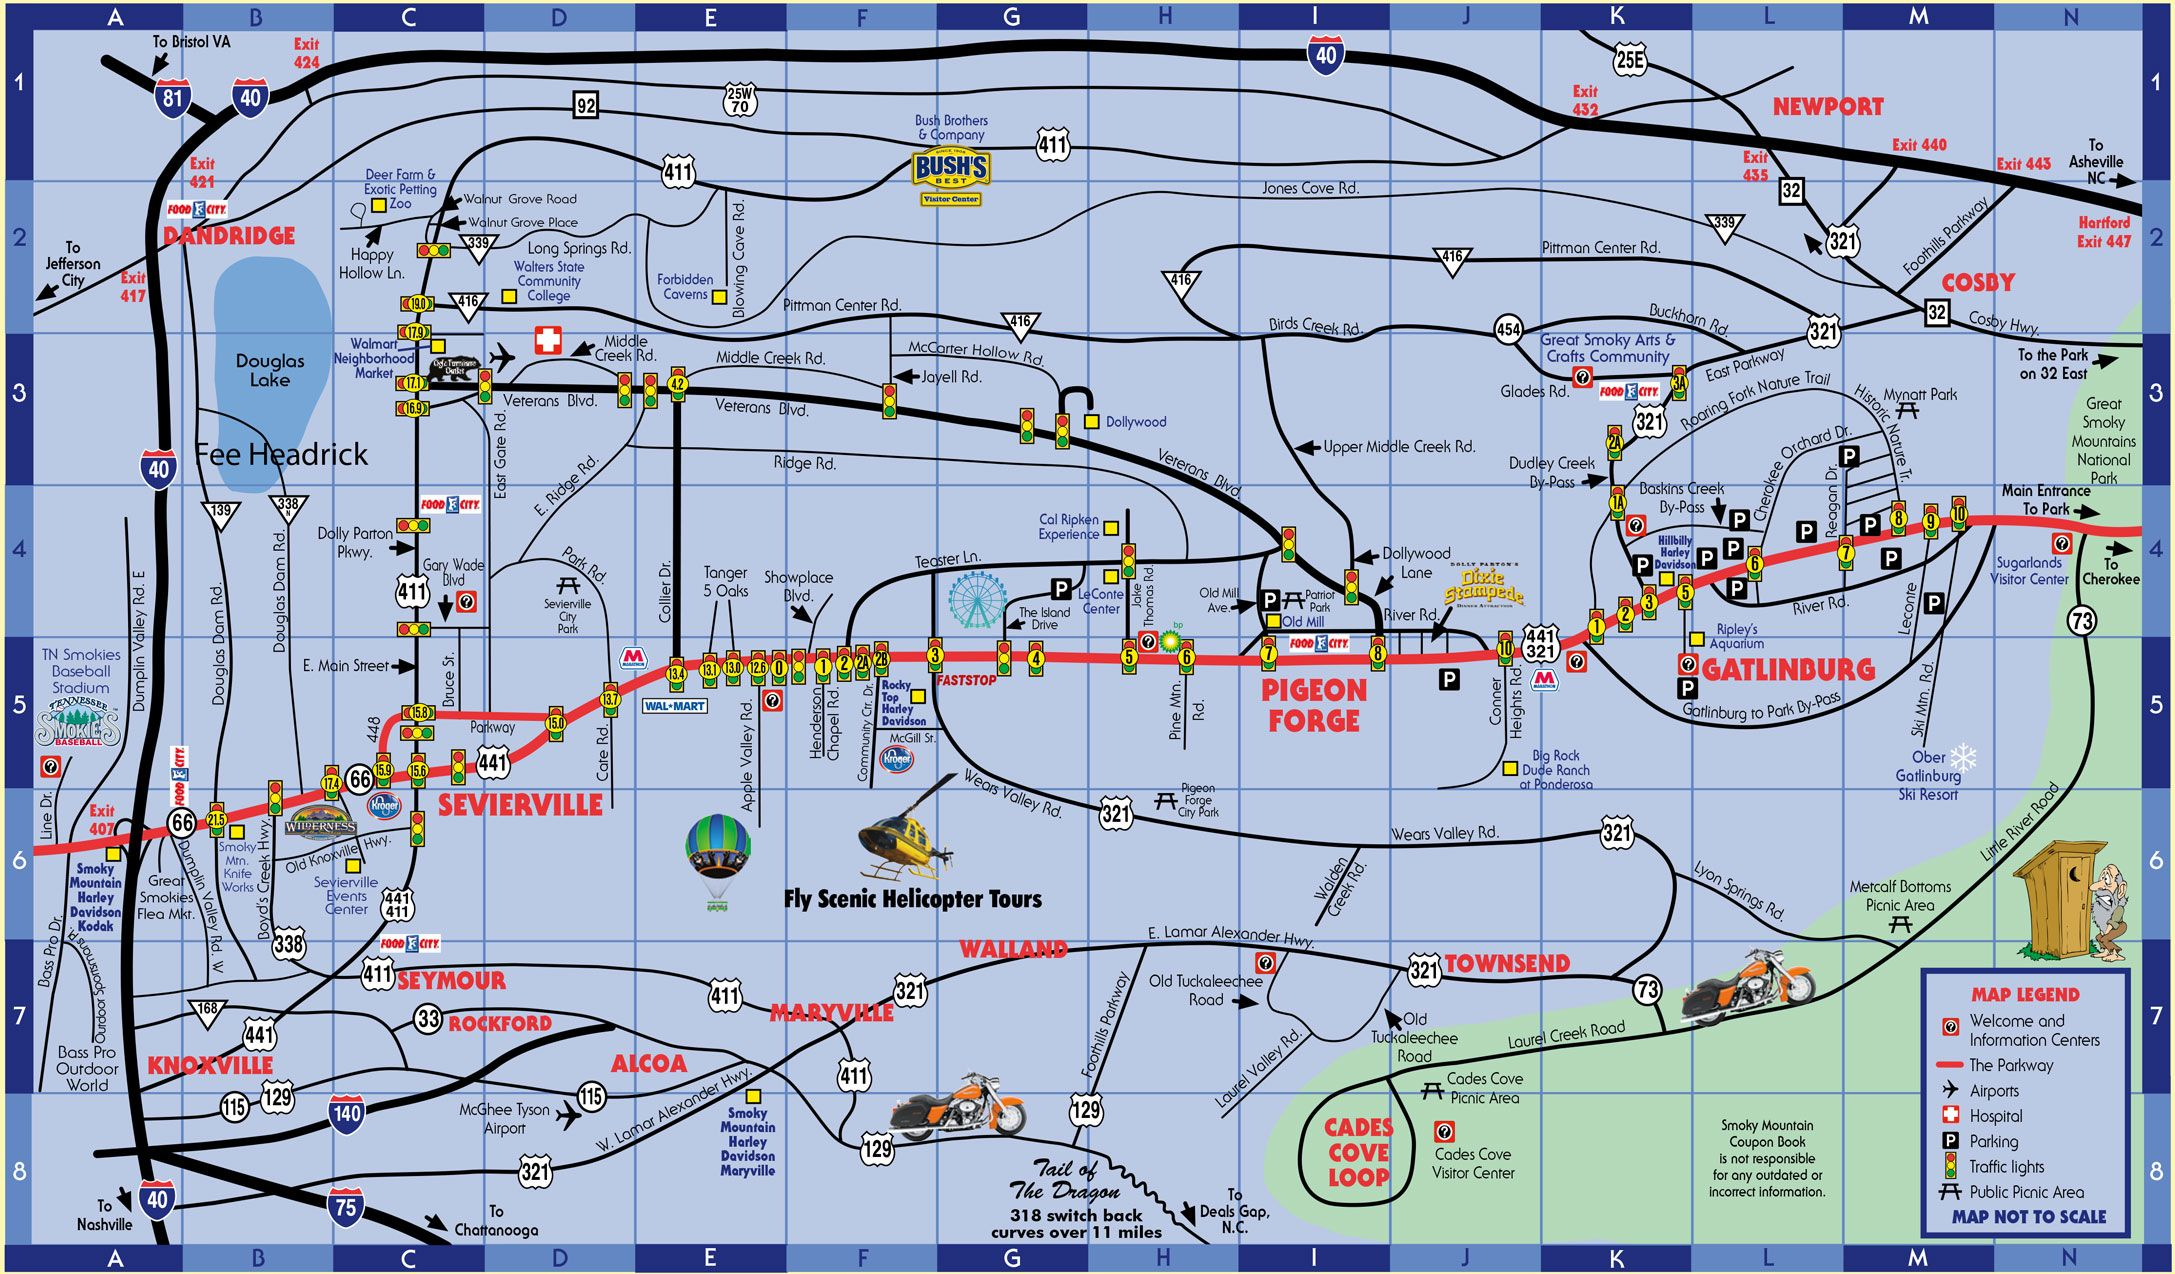 pigeon forgegatlinburg map  pigeon forge coupons from the smoky mountaincoupon book. smokymountaincouponbookcom pigeonforgegatlinburgmap  pa trip